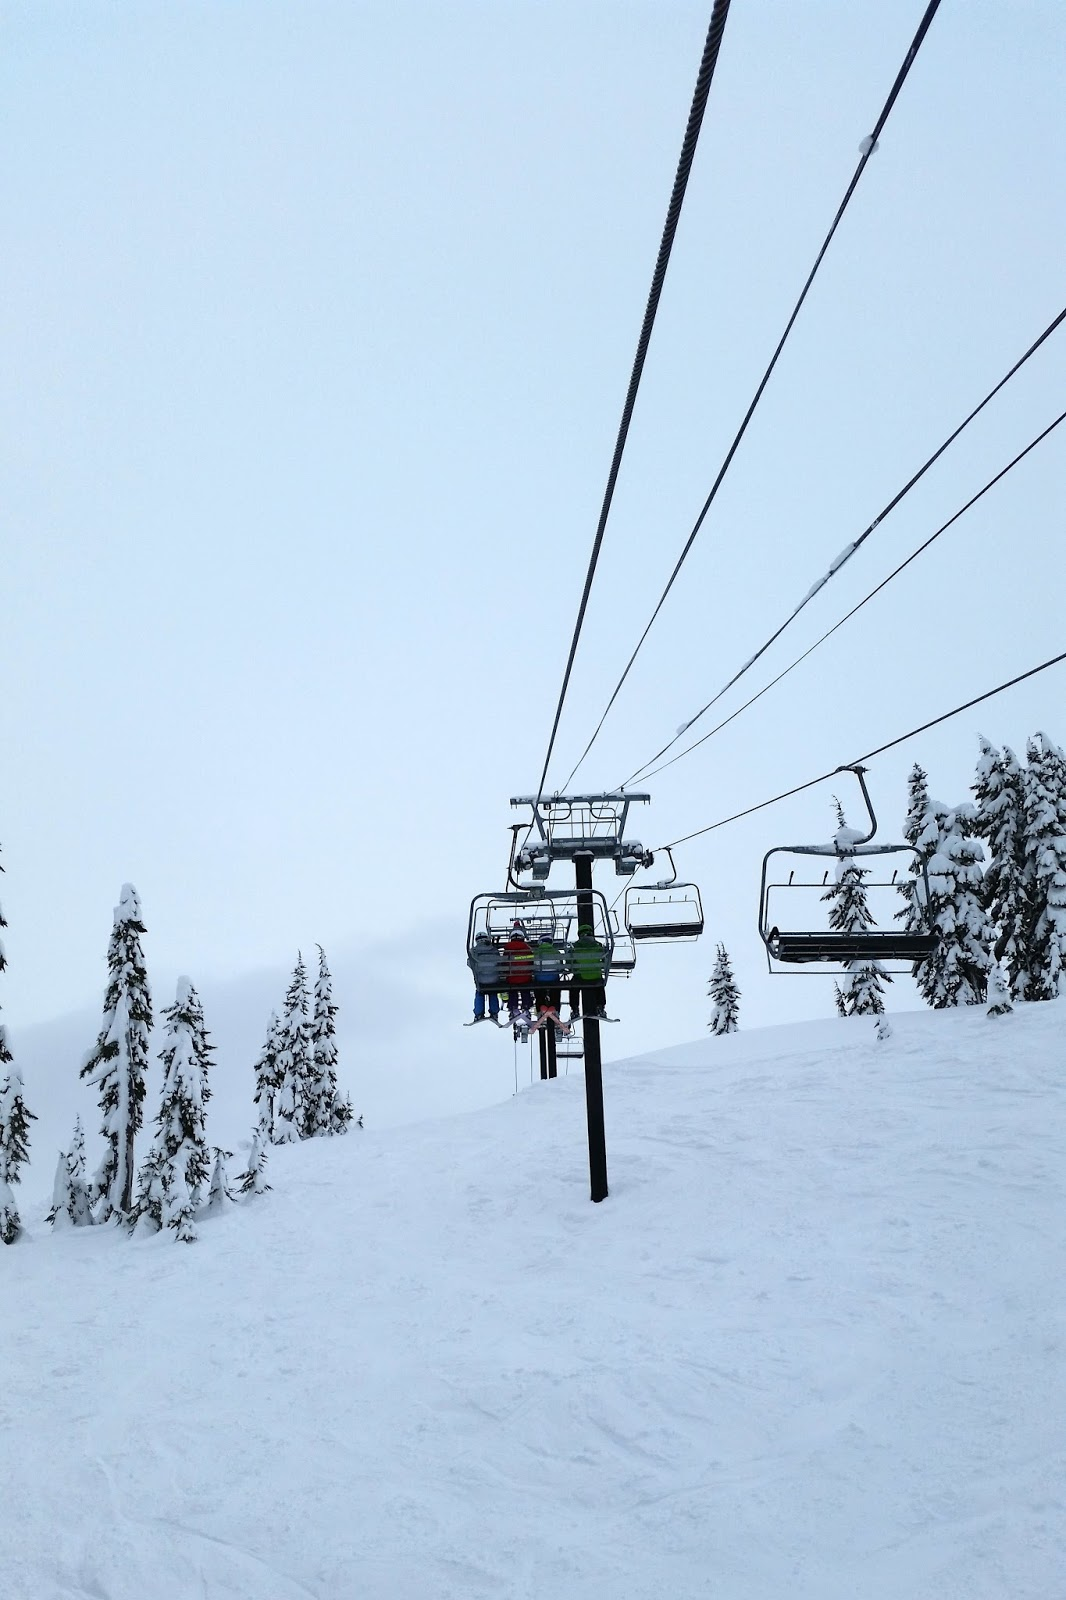 chair lift at mount baker in washington